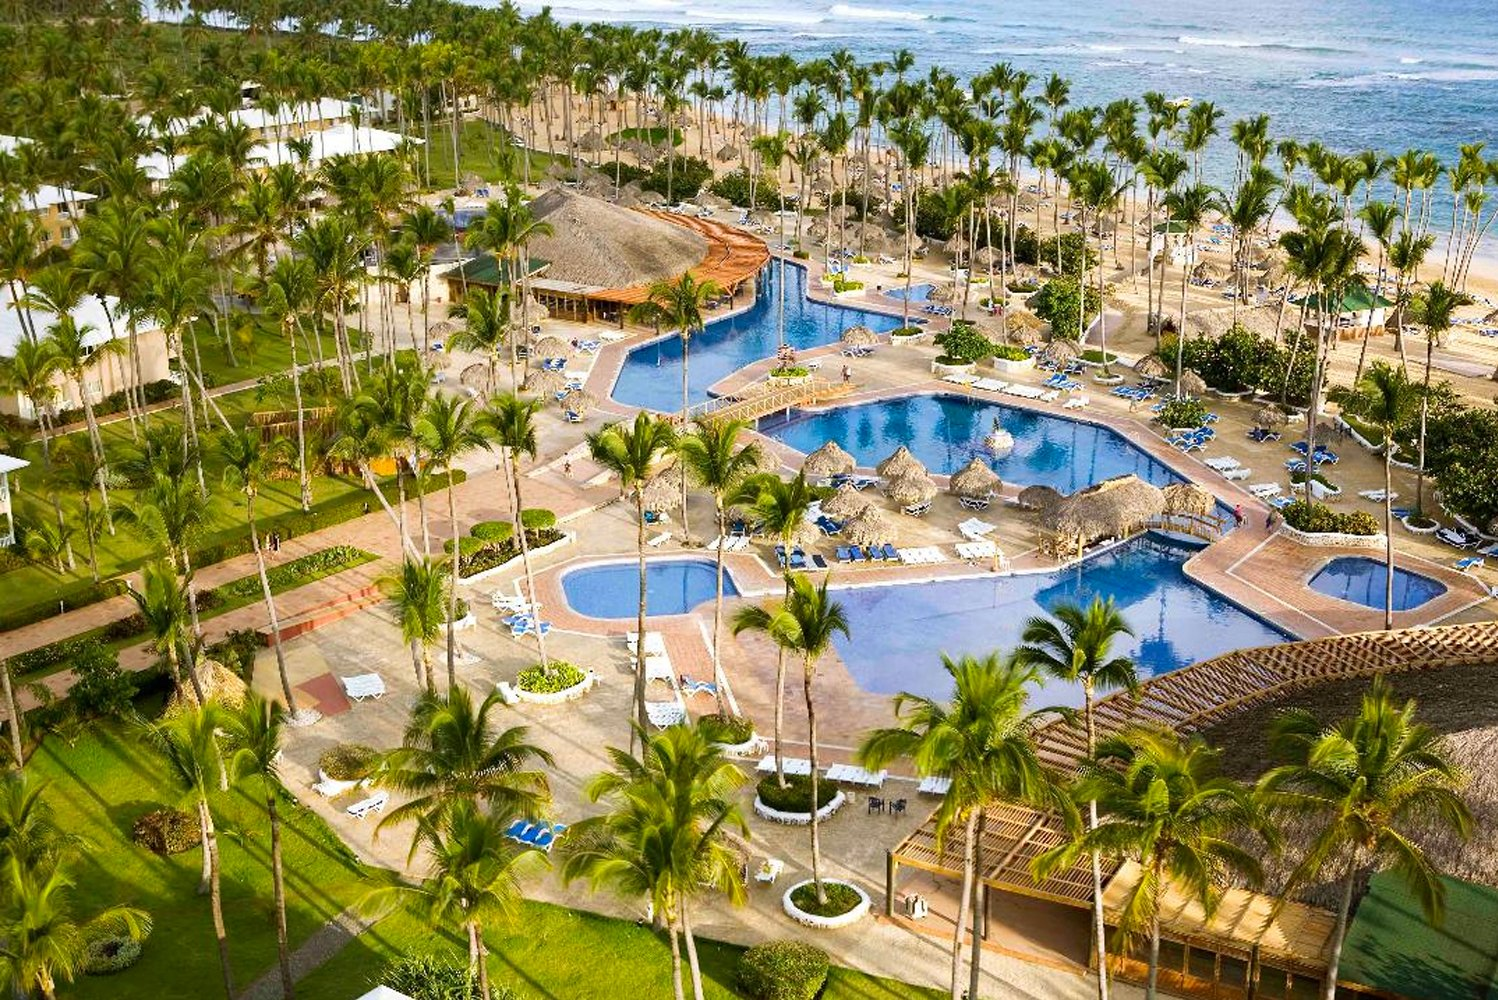 Sirenis Hotels and Resorts will rebrand its Sirenis Punta Cana Resort Casino & Aquagames in the Dominican Republic as Grand Sirenis Punta Cana Resort.